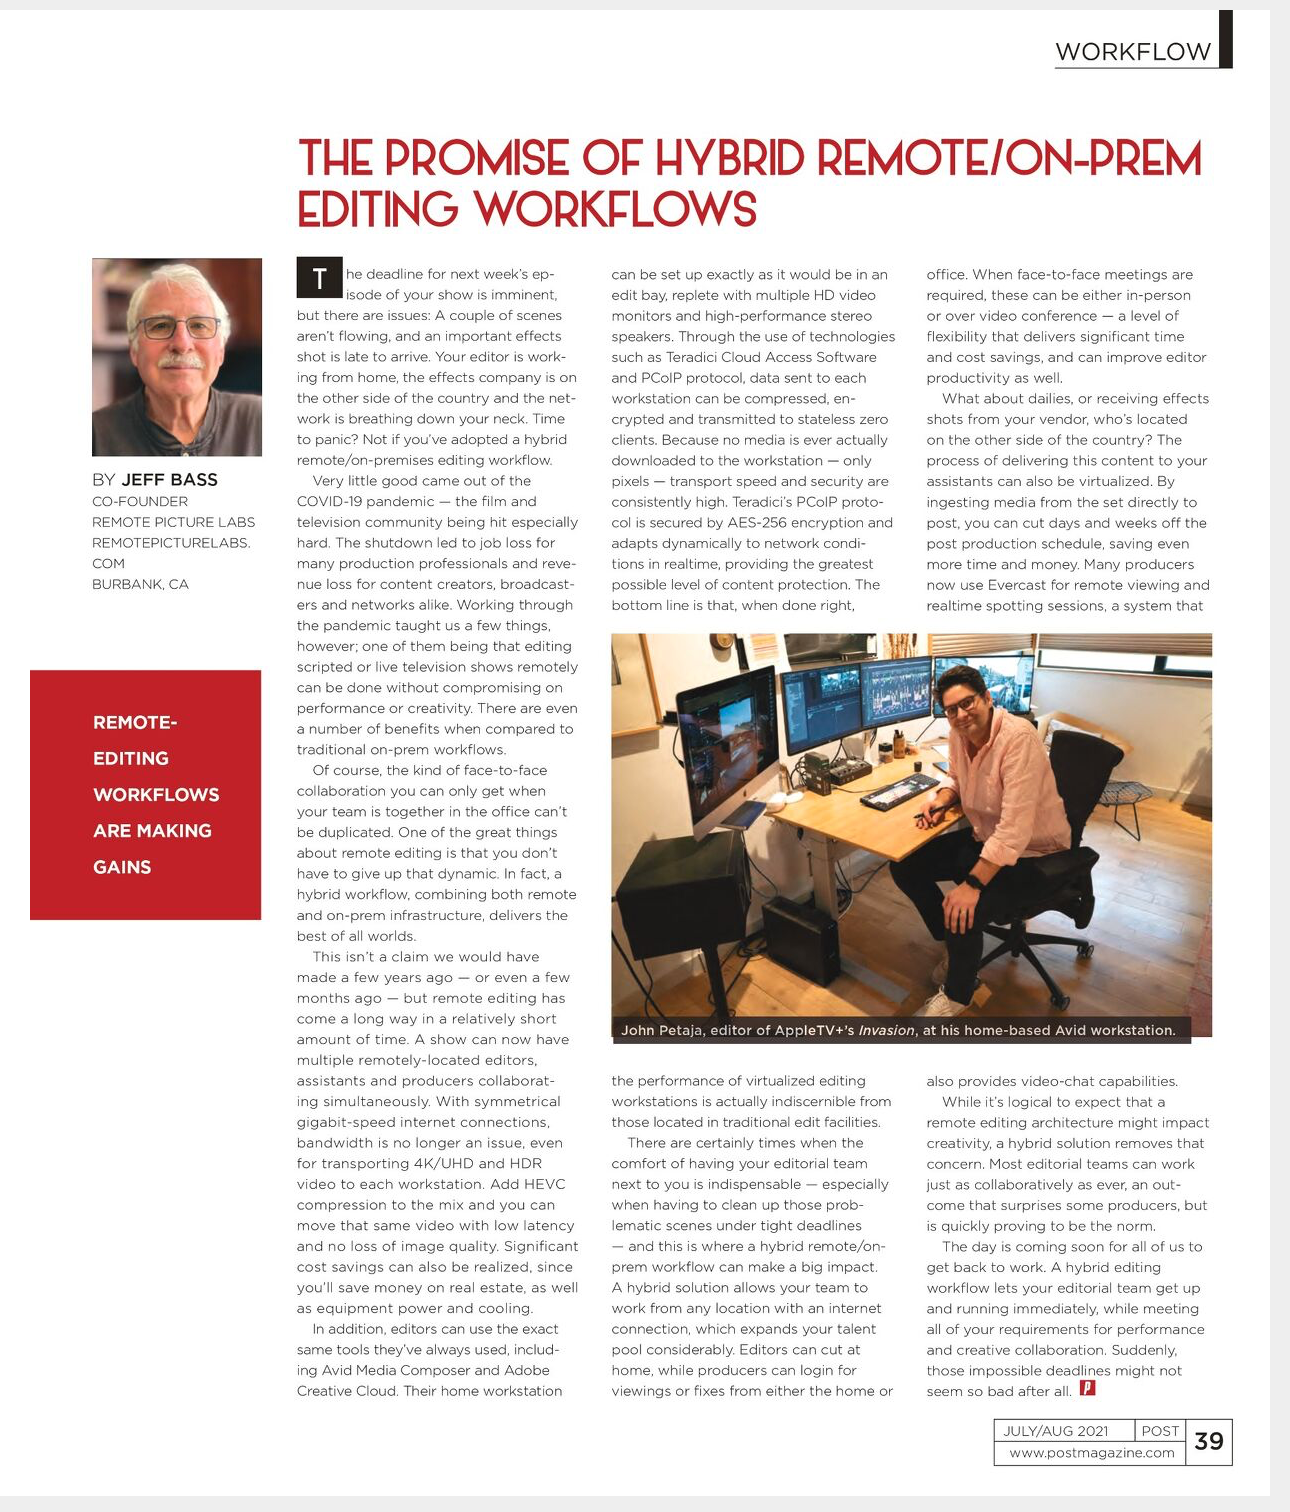 The Promise of Hybrid Remote/On-Prem Editing Workflows - feature in Post Magazine, July/Aug 2021